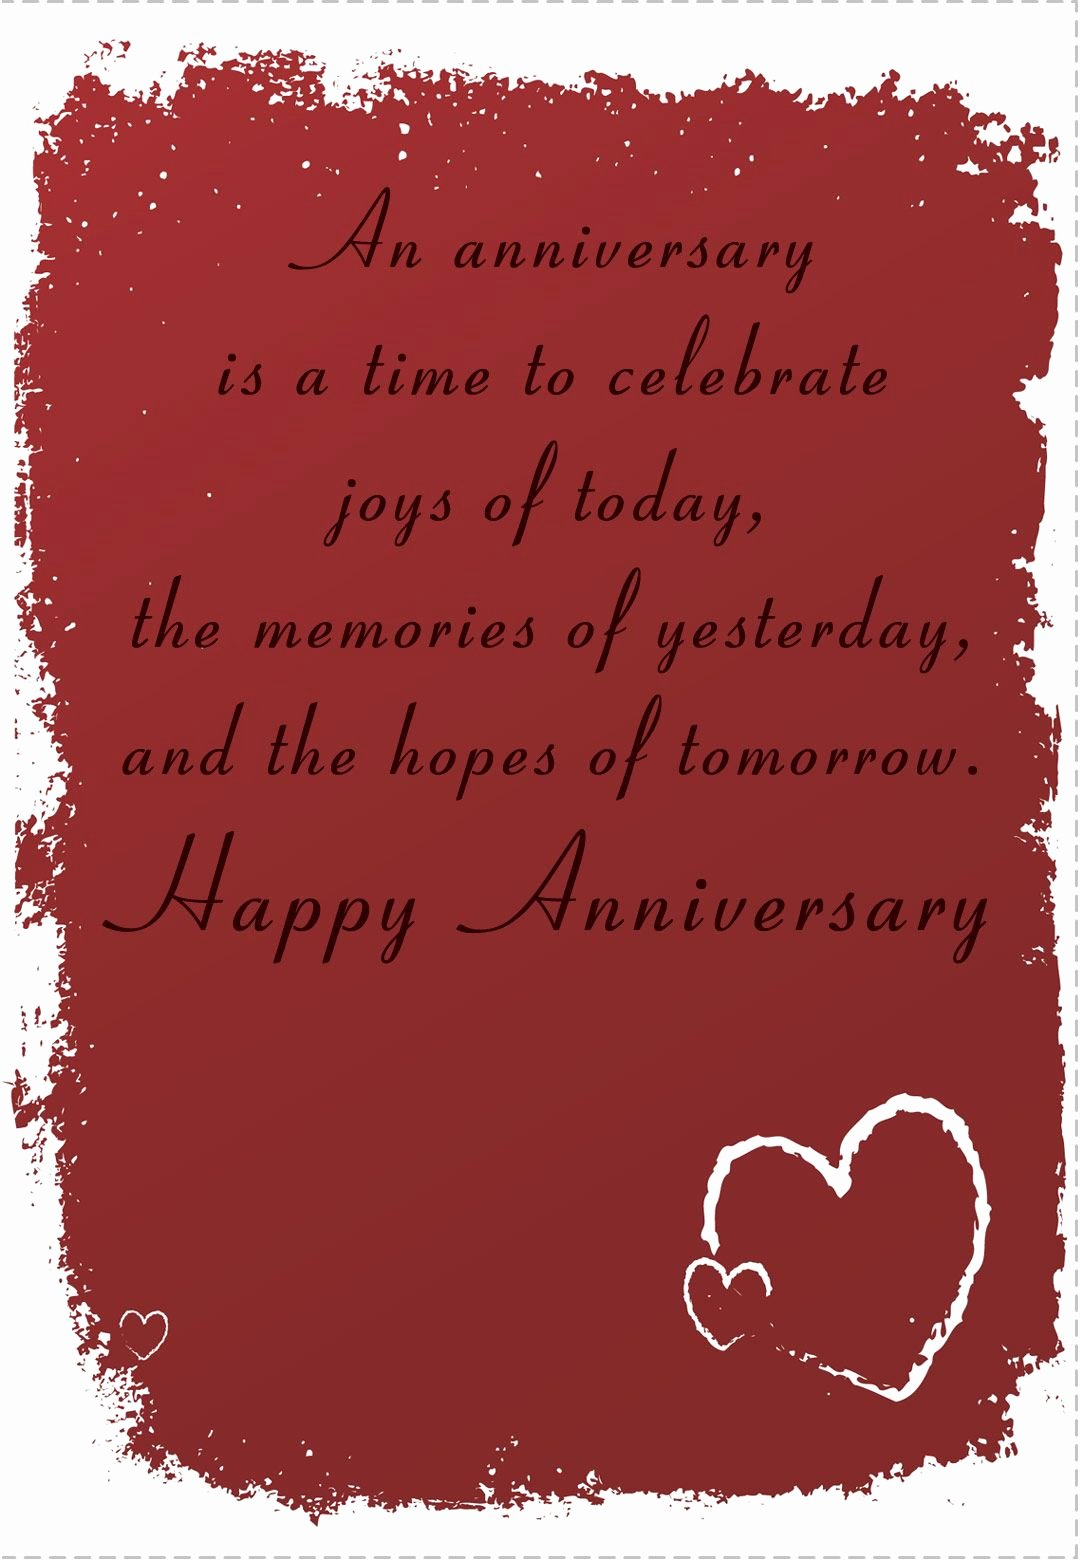 Printable Anniversary Cards Free Beautiful Free Printable Time to Celebrate Anniversary Greeting